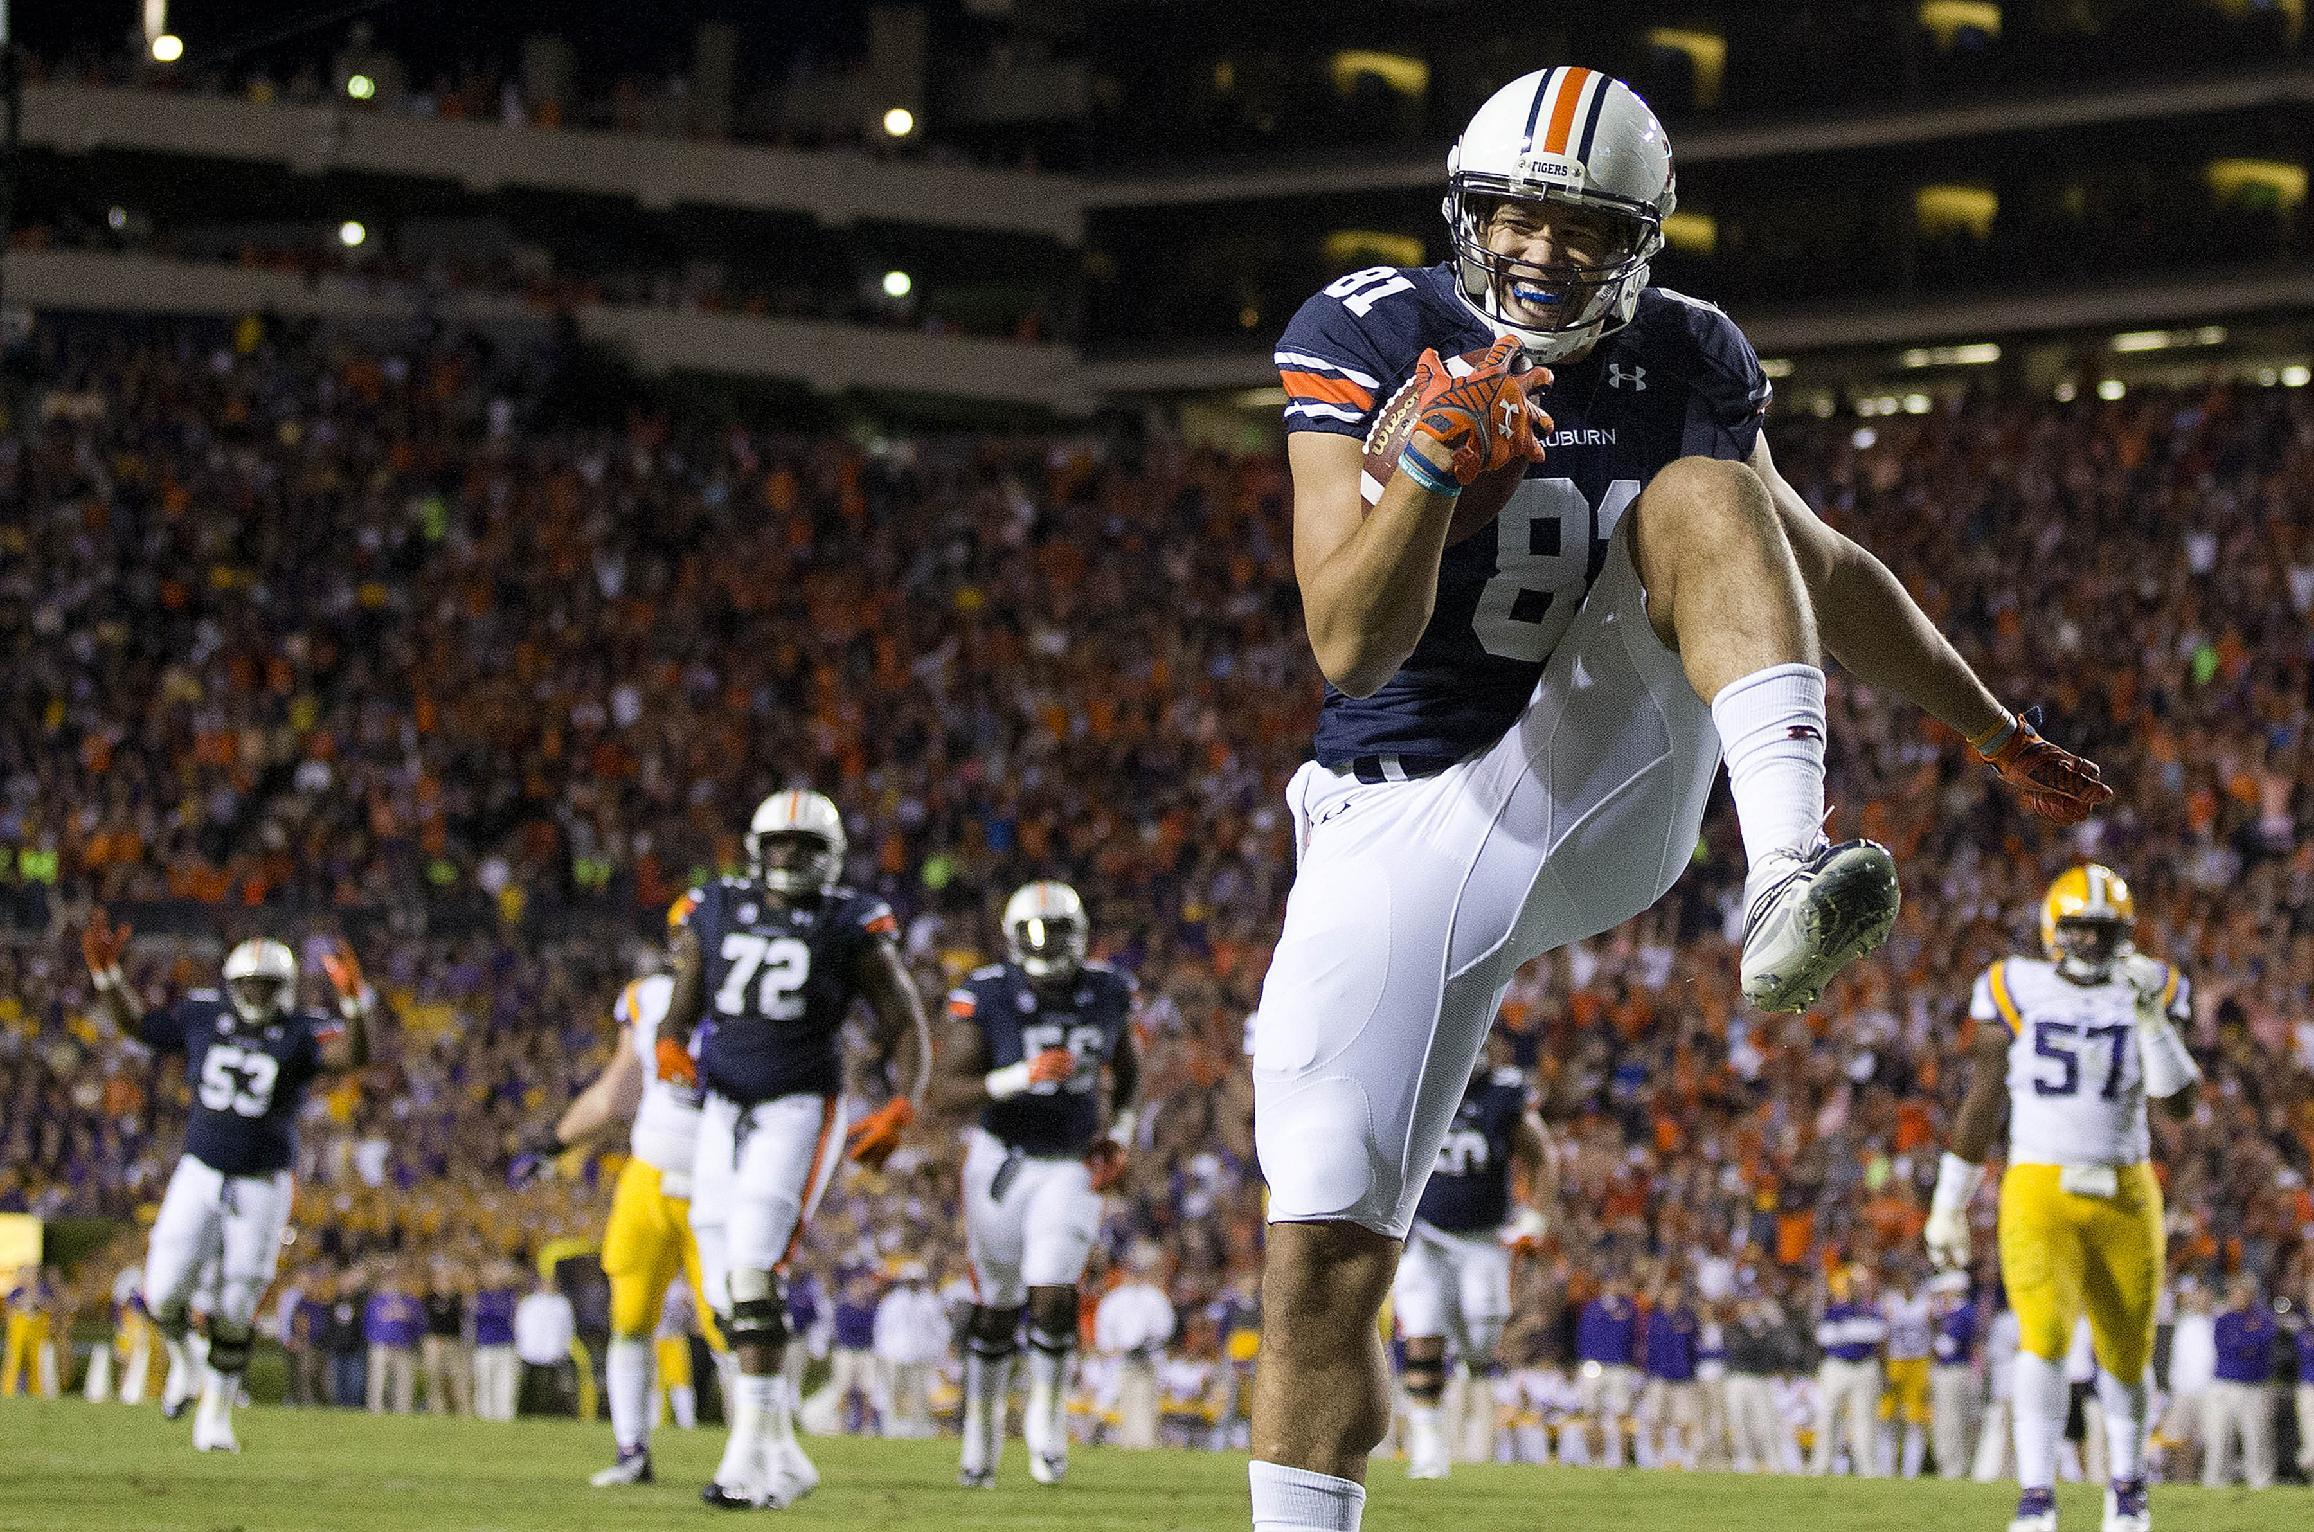 VOD: Watch former Auburn TE C.J. Uzomah ride (and fall off) a horse